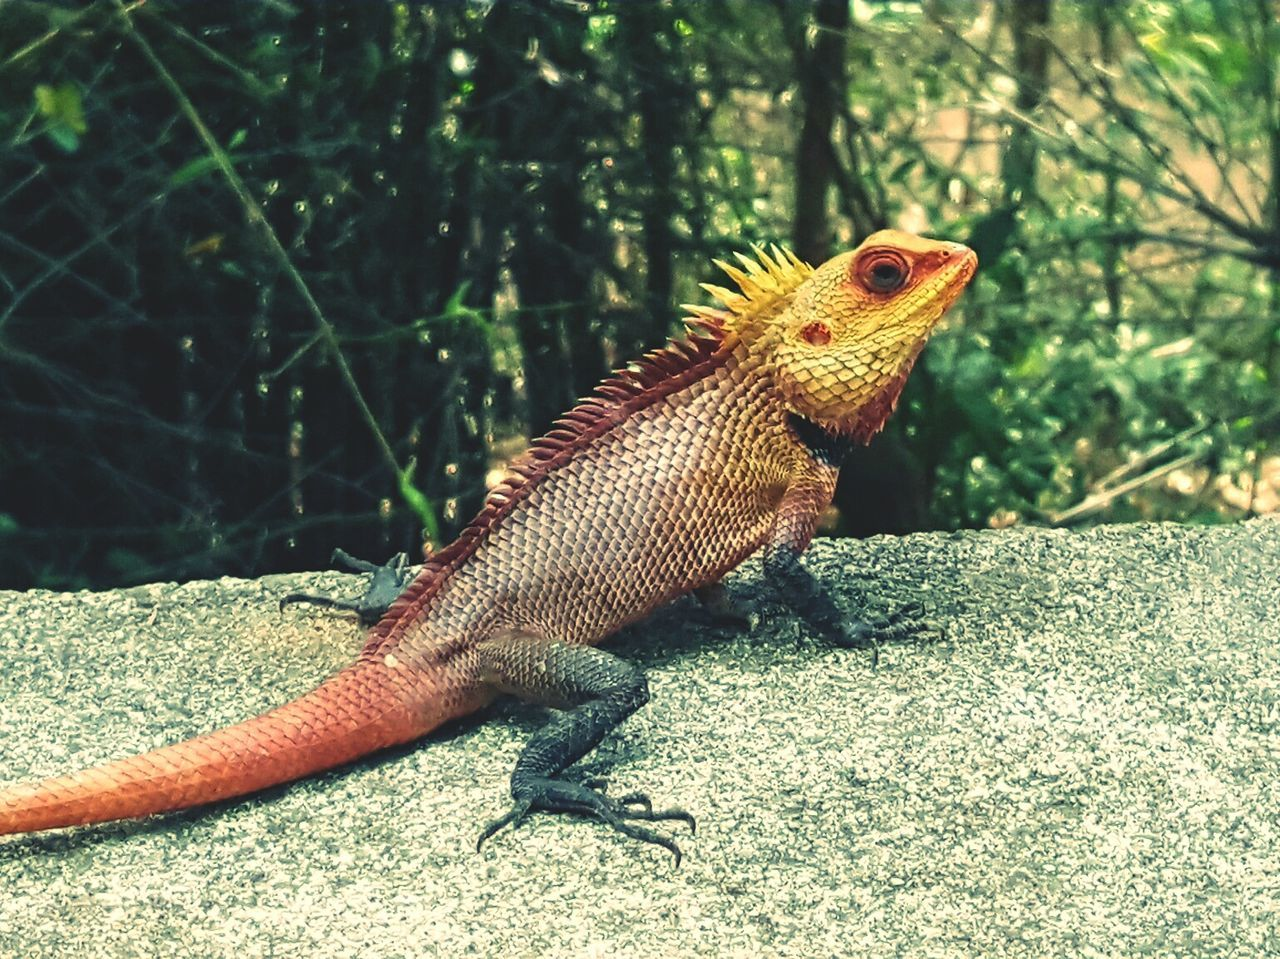 Colourful Lizard Wildlife EyeEm Nature Lover Moment Captures Click Click 📷📷📷 The Great Outdoors With Adobe Taking Photos India The Great Outdoors - 2016 EyeEm Awards Closeupshot EyeEm Colour Of Life